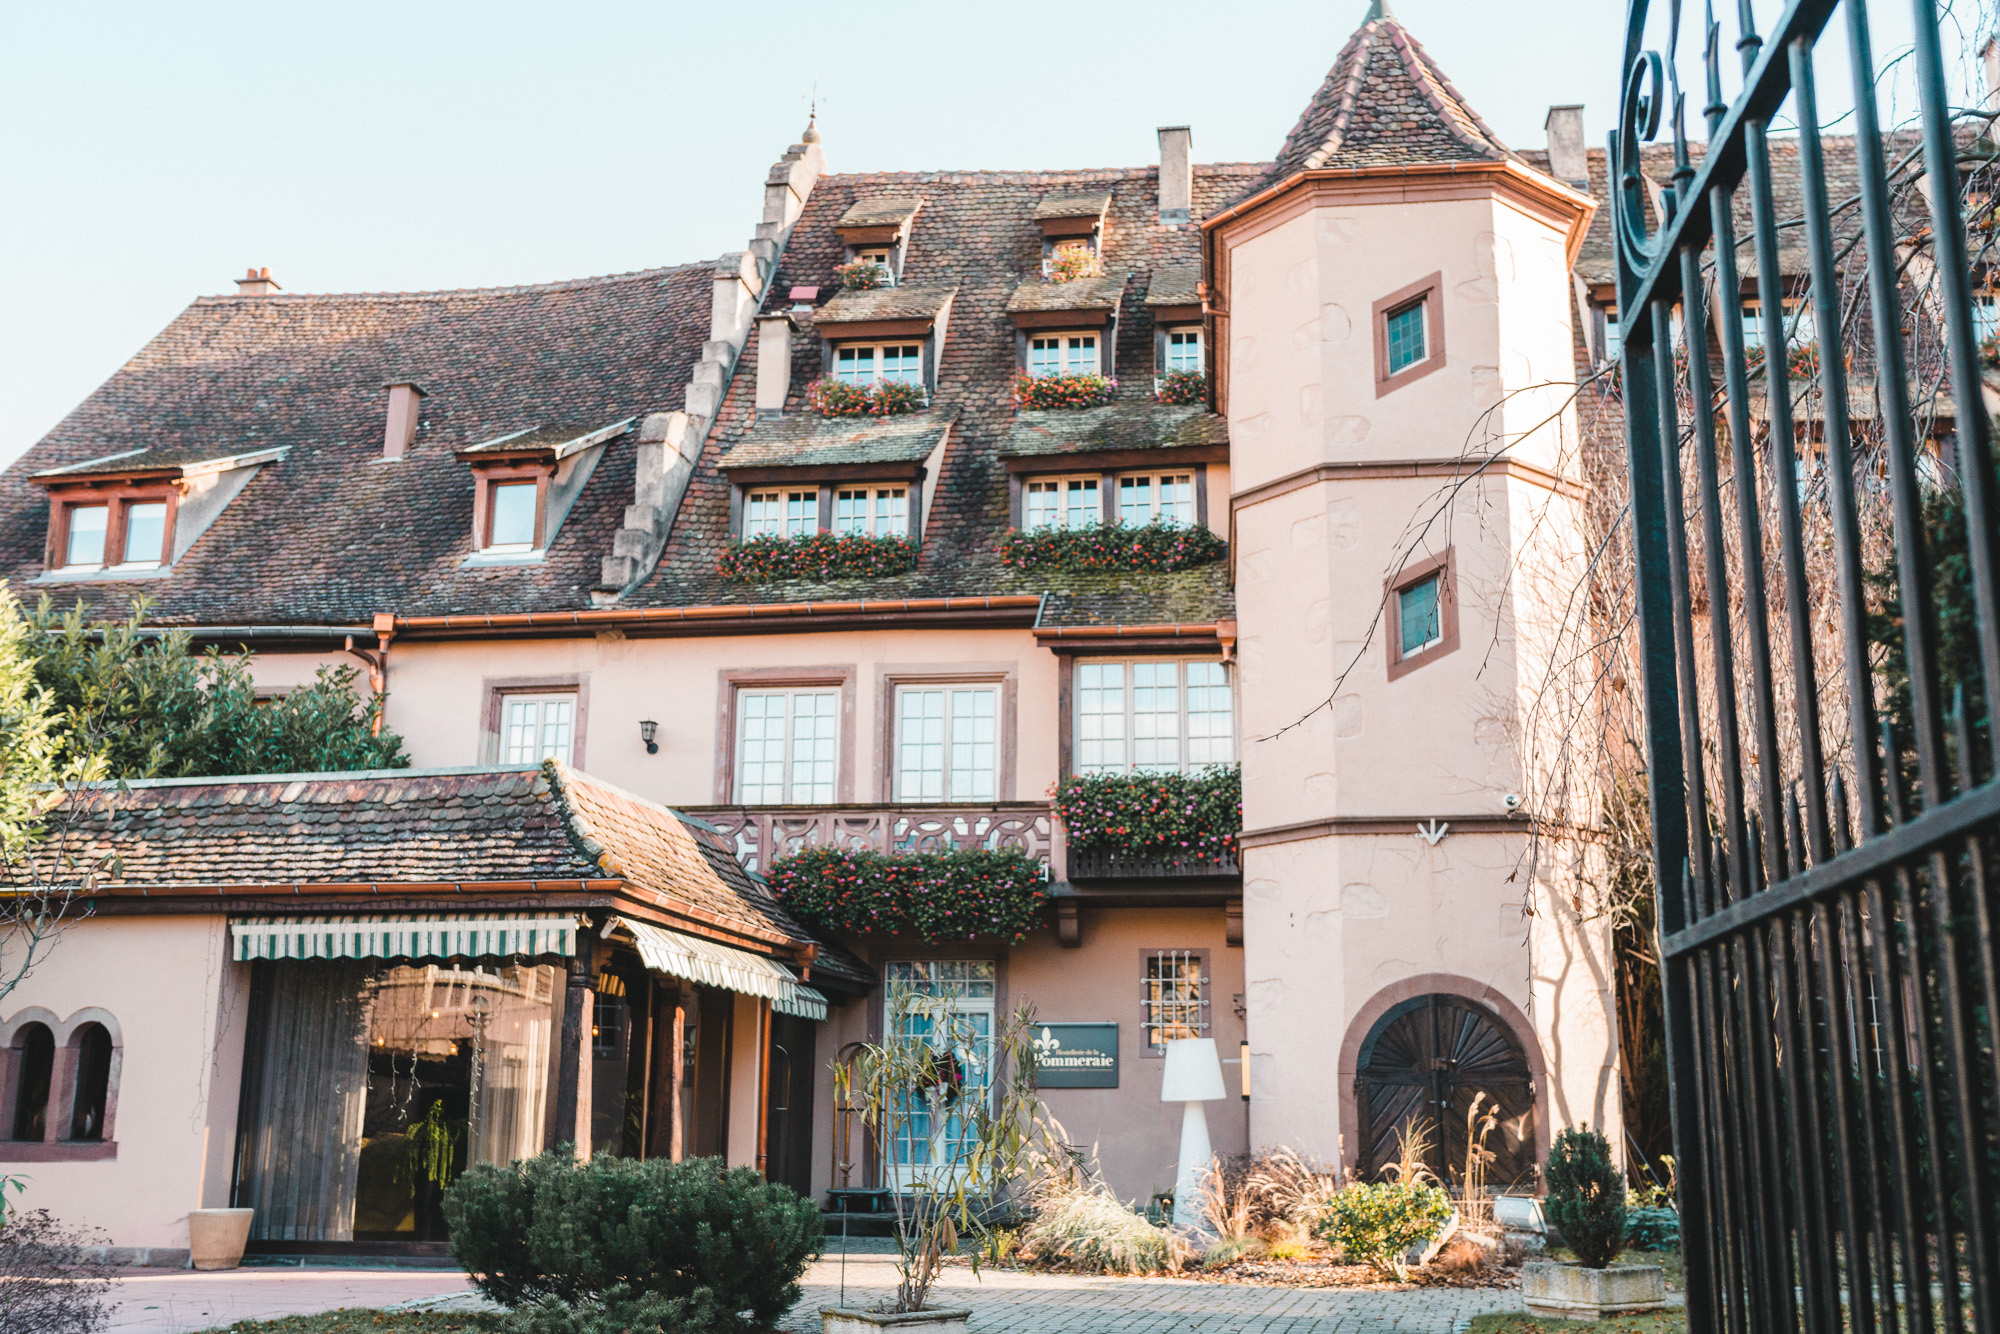 Hostellerie De La Pommerie French Hotel near Colmar and Strasbourg Christmas Markets